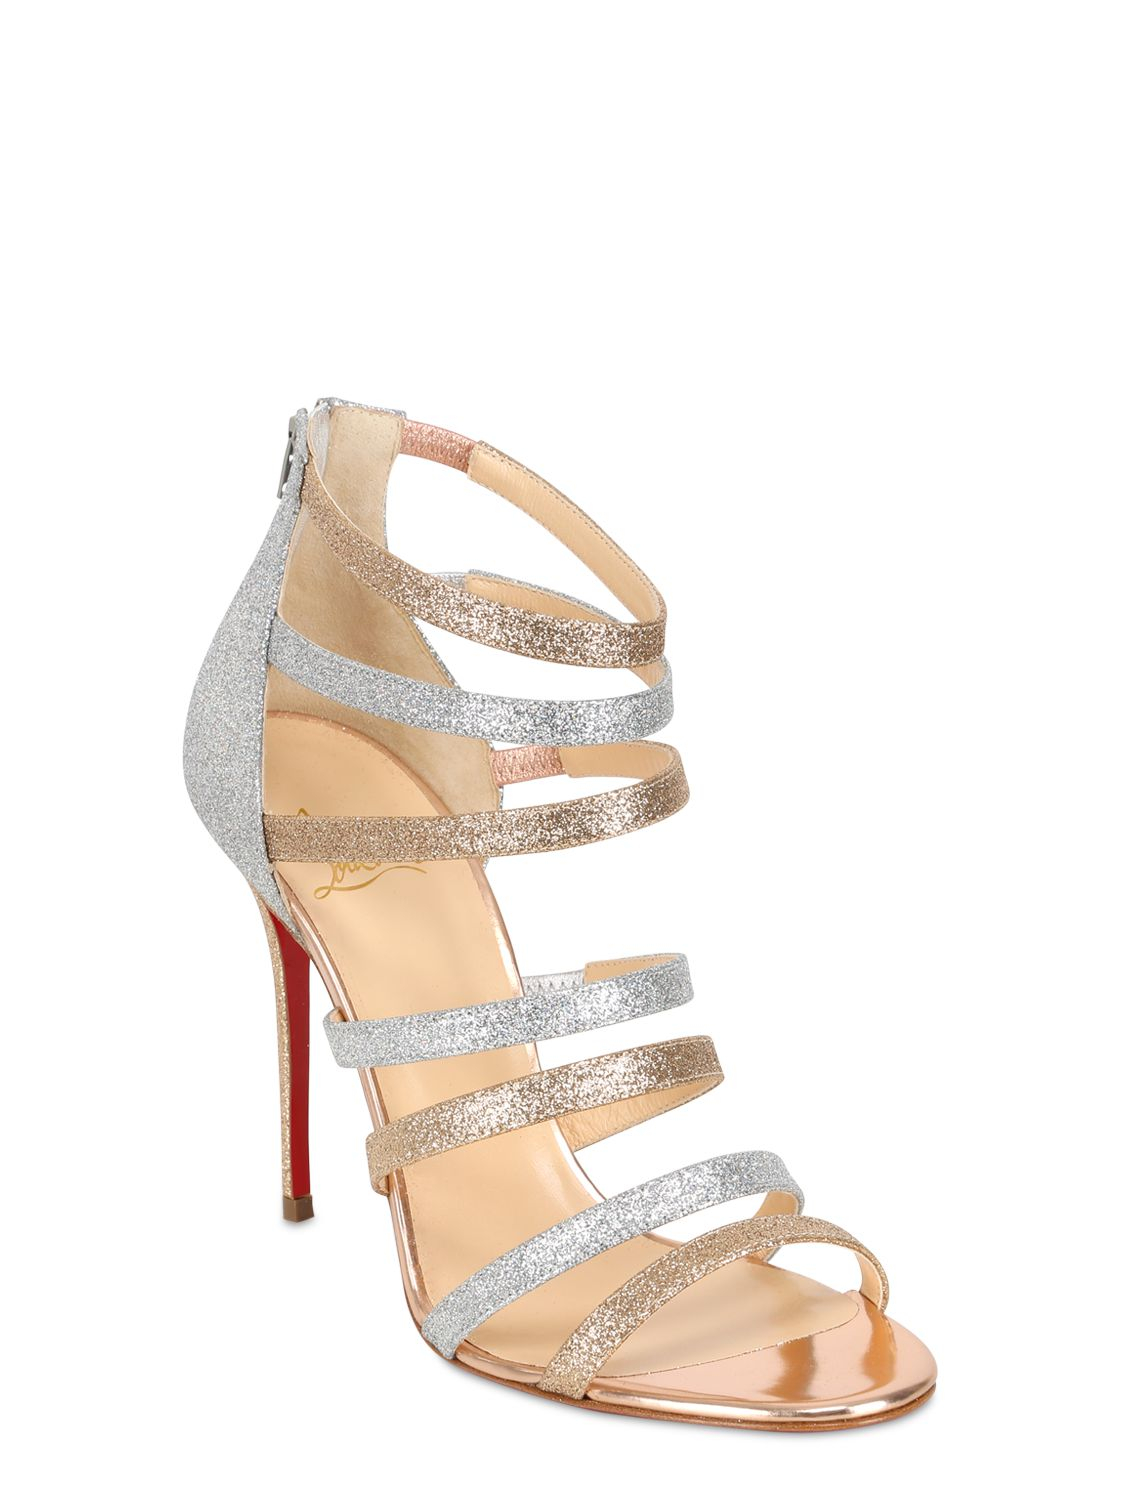 louboutin cage sandals | Landenberg Christian Academy Guidelines ...